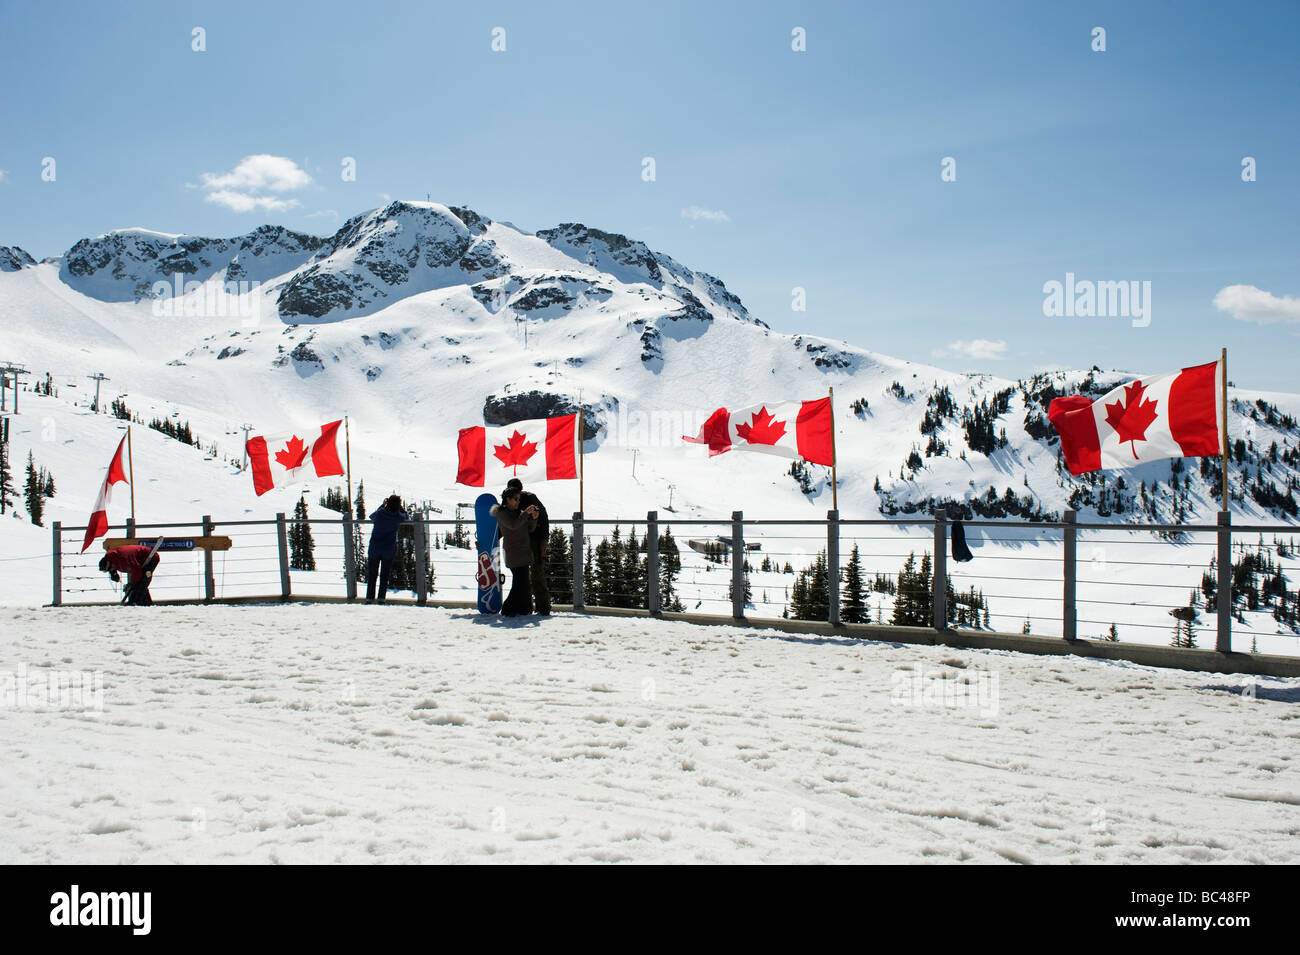 Whistler mountain resort venue of the 2010 Winter Olympic Games - Stock Image